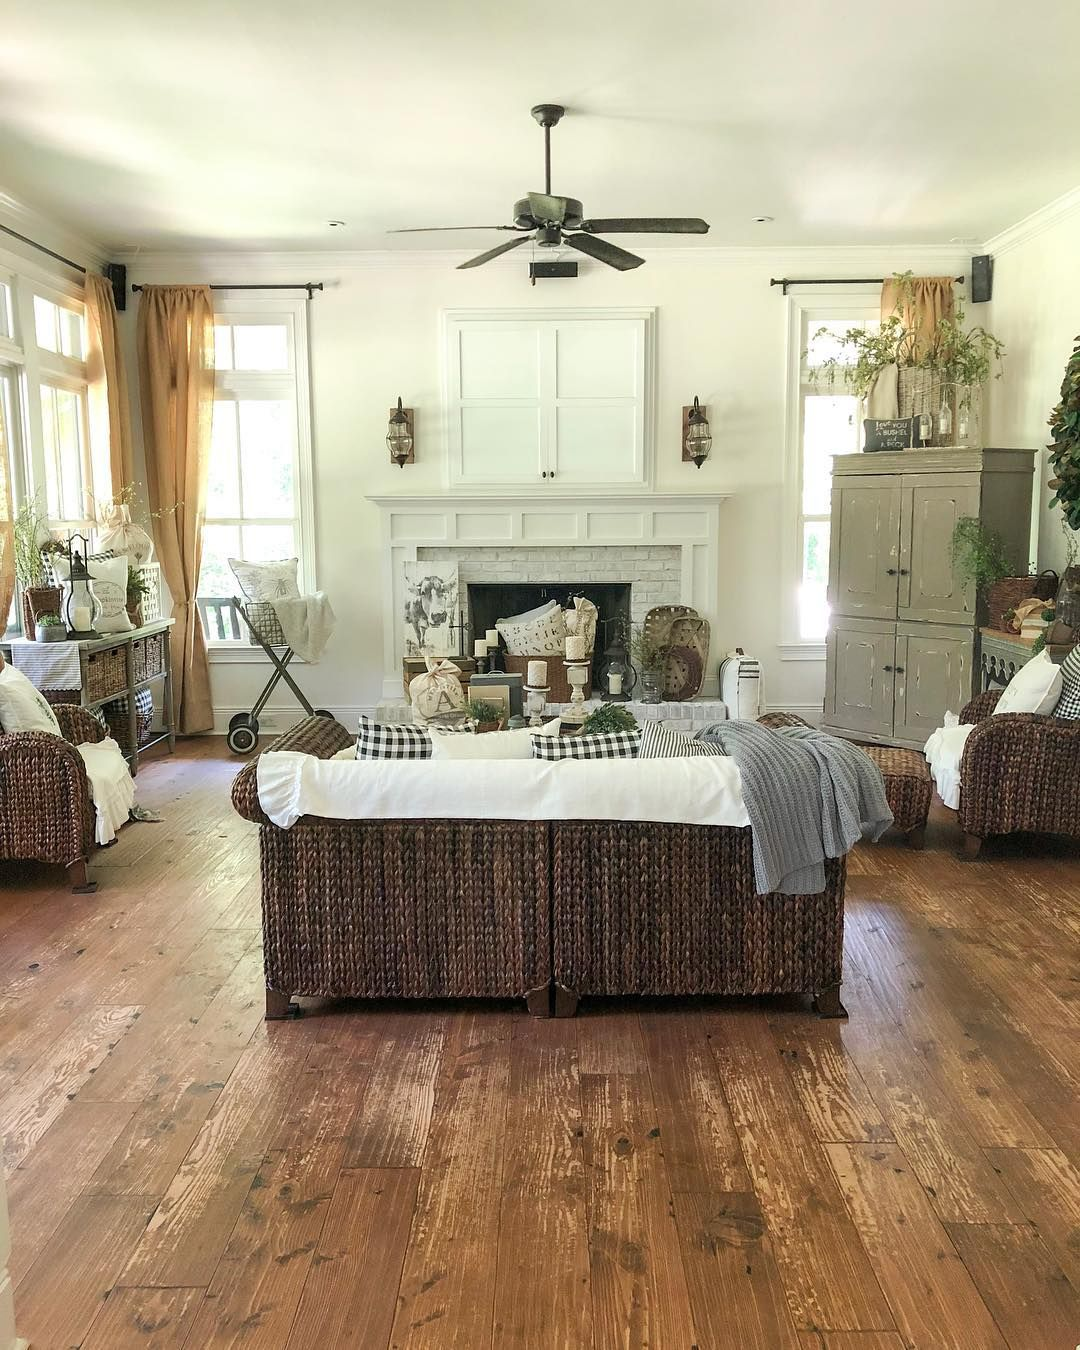 Image may contain bedroom, table and indoor Big rugs